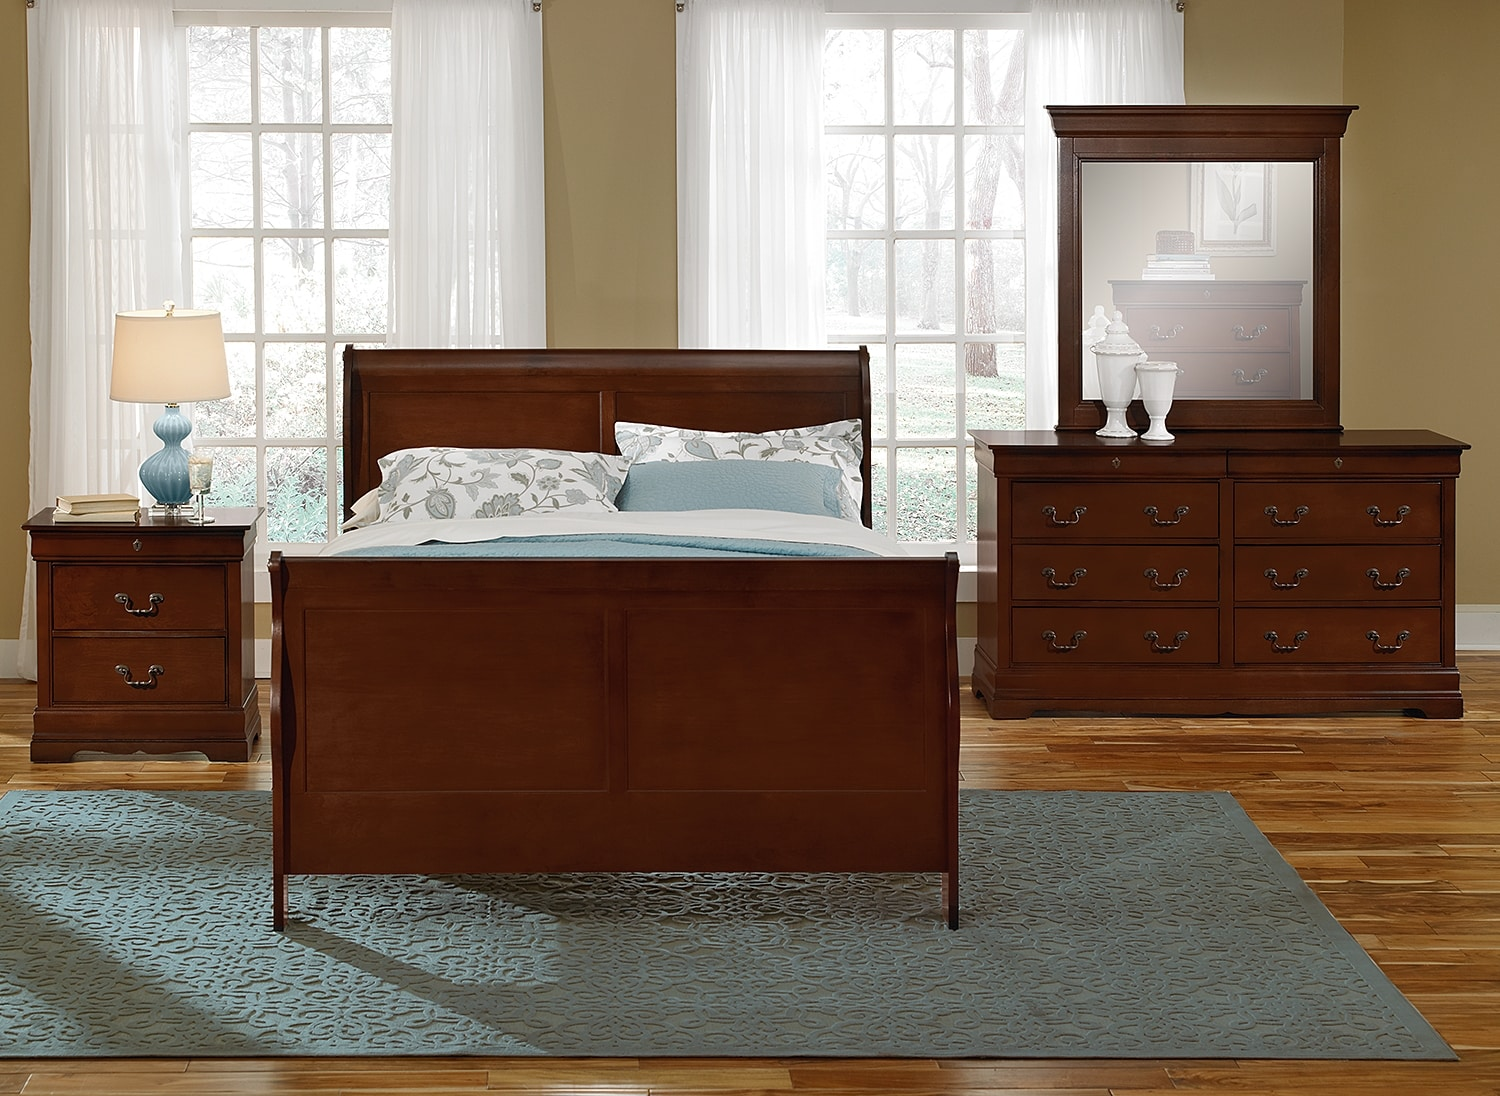 Kids Furniture - Neo Classic Youth 6-Piece Twin Bedroom Set - Cherry